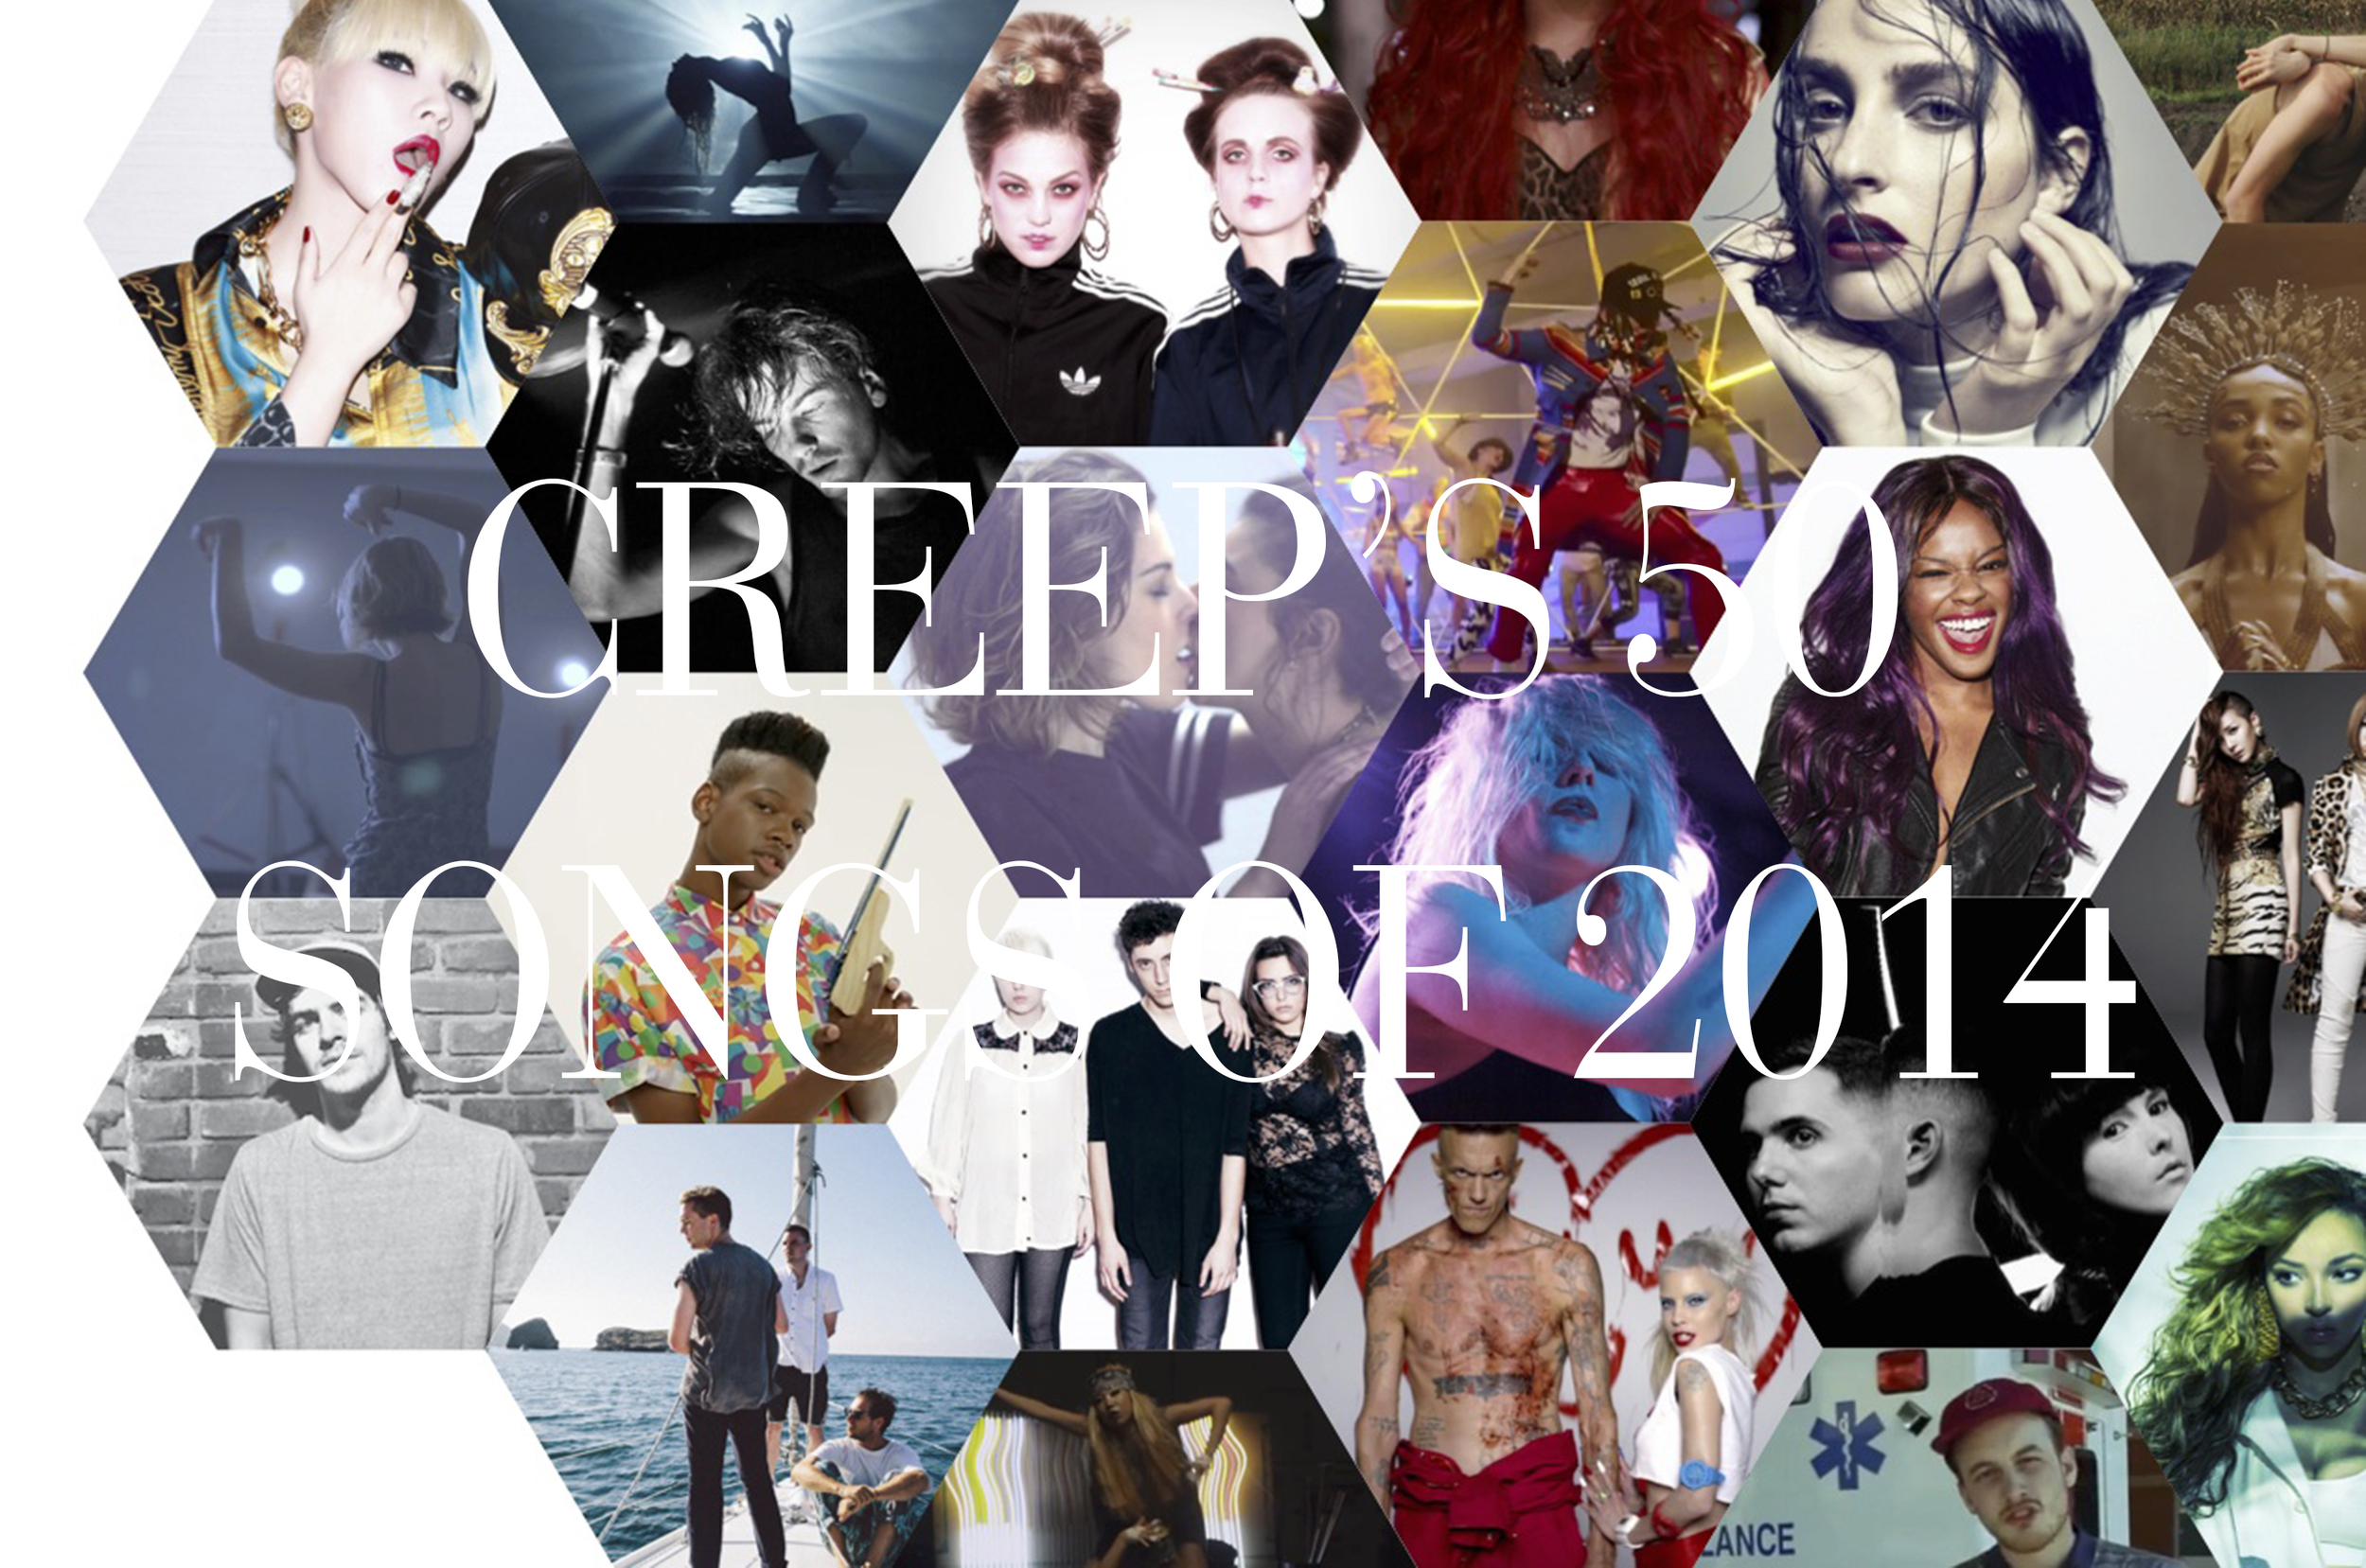 MUSIC  It's been a big year for us. We're looking forward to 2015but before we slam glasses with the new year, let's take a look back at the songs we had on repeat this year while cranking out issues.